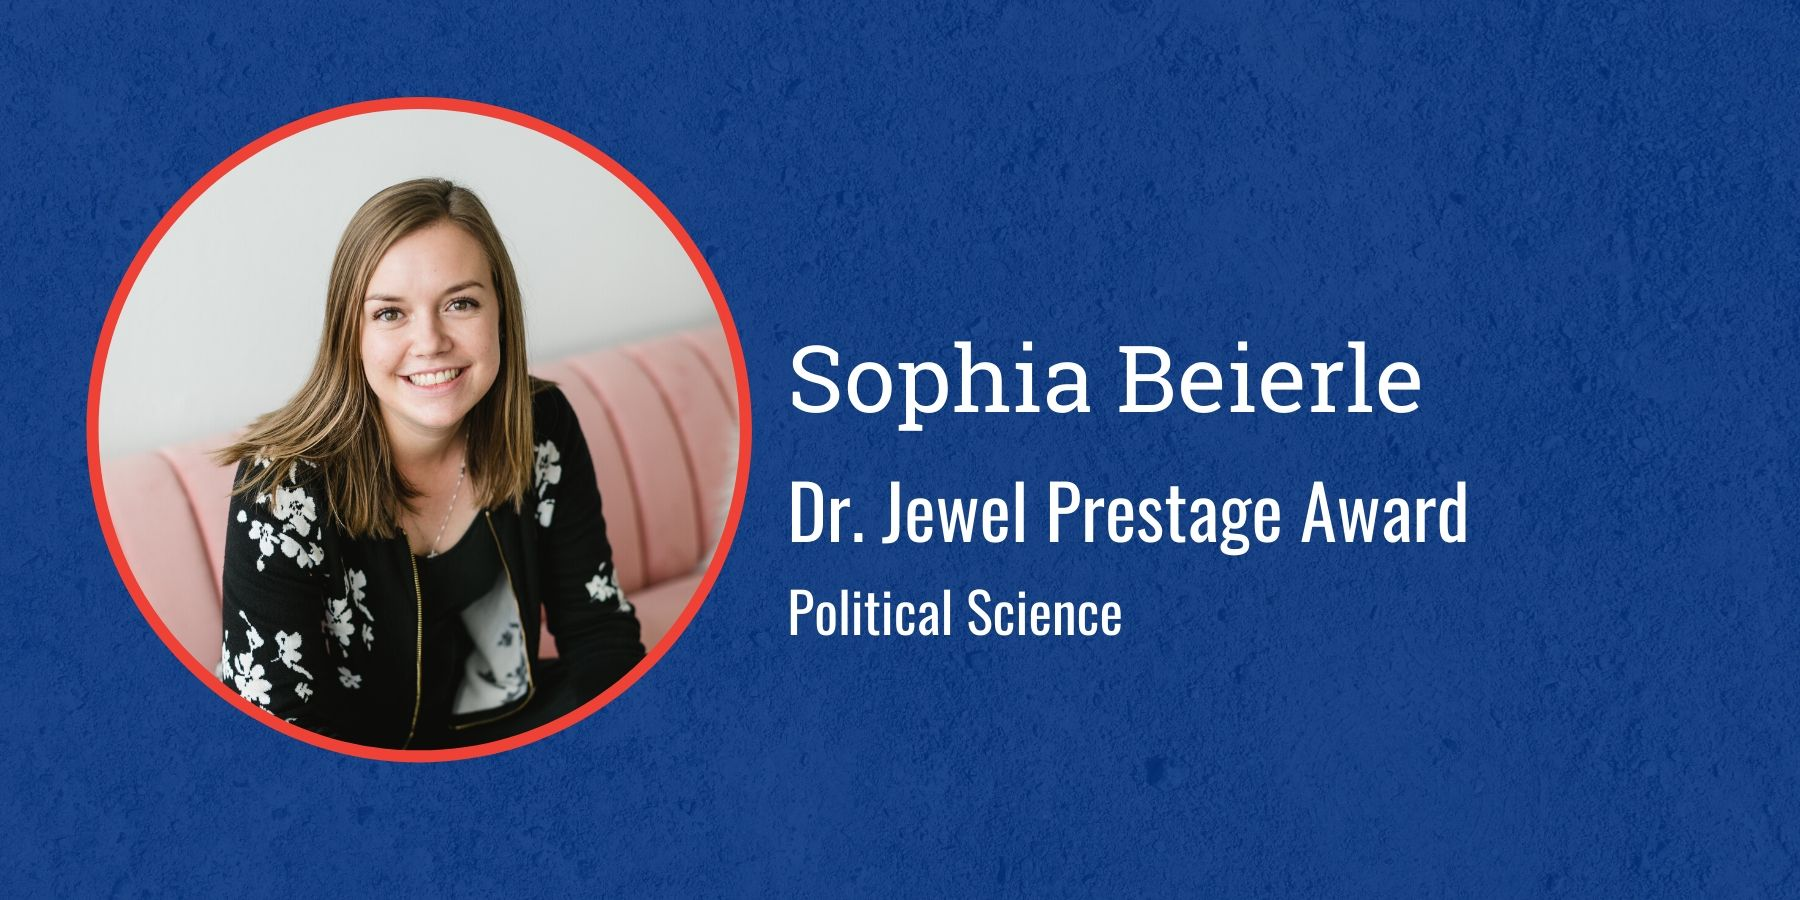 Photo of Sophia Beierle with text Dr. Jewel Prestage Award, Political Science